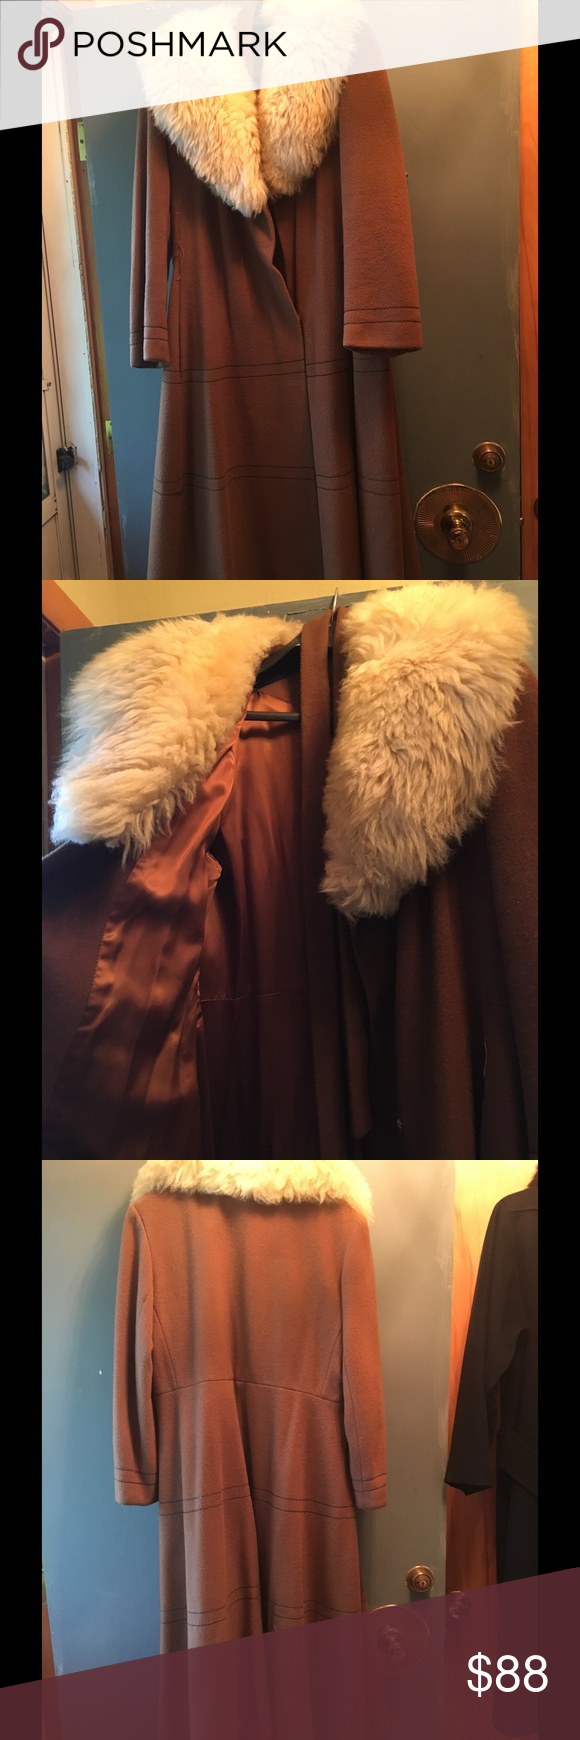 Wool coat, fine faux fur trim Gorgeous camel wool coat. Beautiful and elegant , classic color never go out of style. Full faux fur detachable collar in mint condition. Jackets & Coats